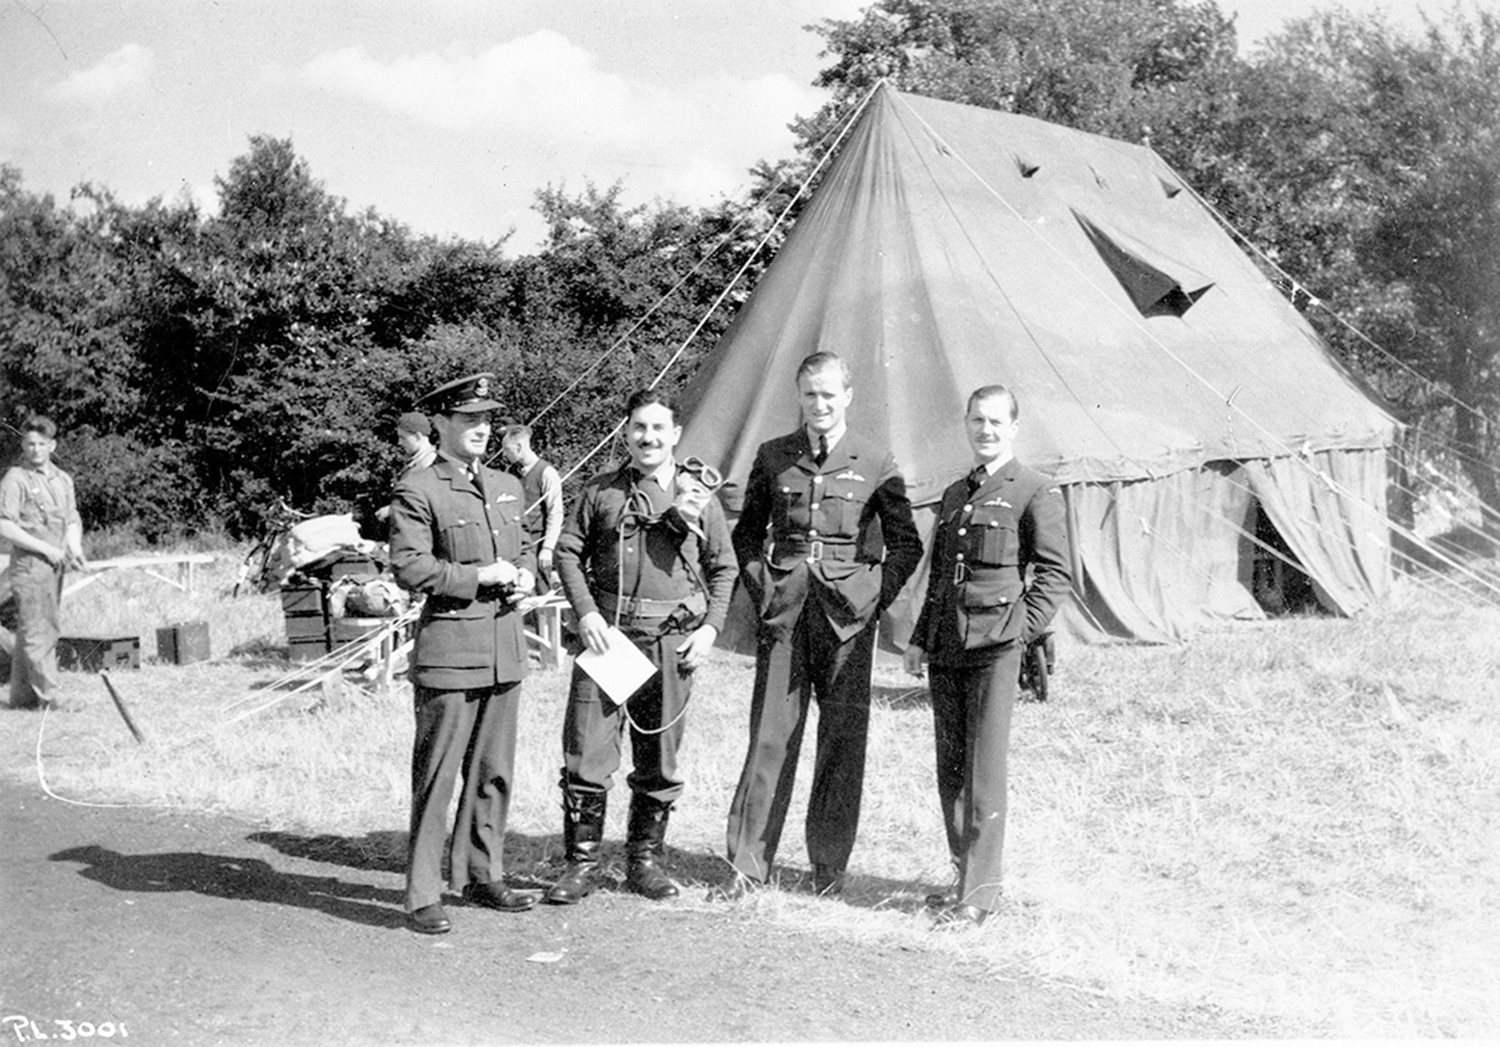 In 1940, Royal Canadian Air Force No. 1 (Fighter) Squadron members Flying Officer Otto John Peterson, Flying Officer Jean-Paul Joseph Desloges, Flying Officer Paul Brooks Pitcher and Flying Officer Hartland de Montarville Molson stand outside a tent at Royal Air Force Northolt, South Ruislip, in the London borough of Hillingdon. PHOTO: DND